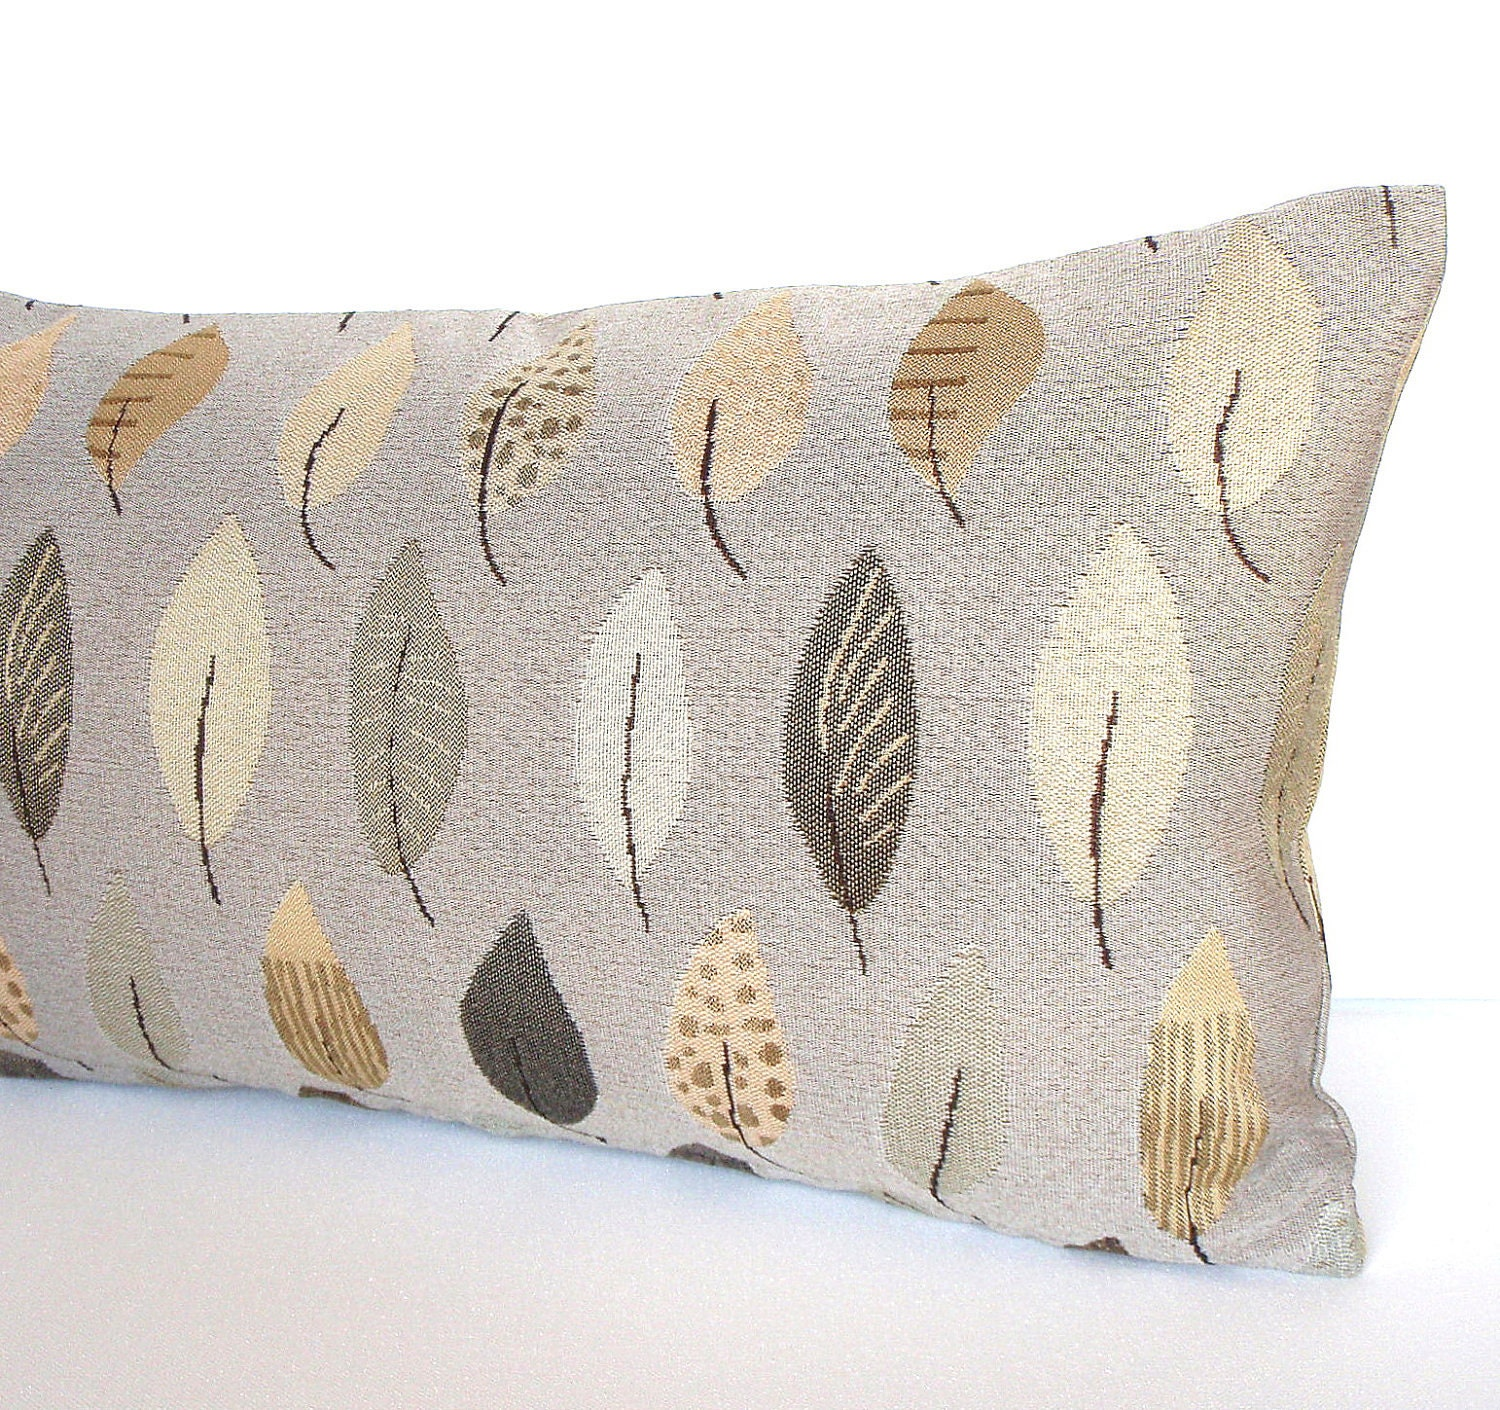 Grey Lumbar Pillow -12x21 - Contemporary Feather Leaf Grey and Gold - Decorative Throw Pillow Cover - couchdwellers